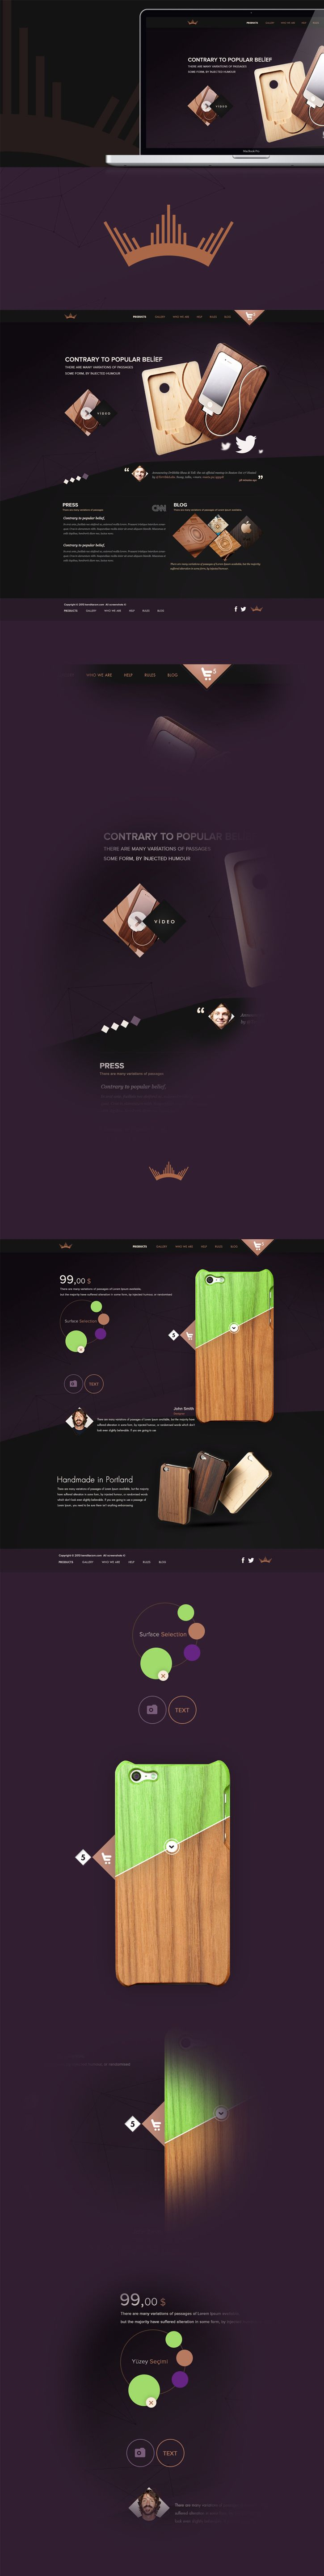 Wood via @Behance http://www.behance.net/gallery/Wood/9455875?utm_source=Triggermail_medium=email_campaign=Net%20Project%20Published